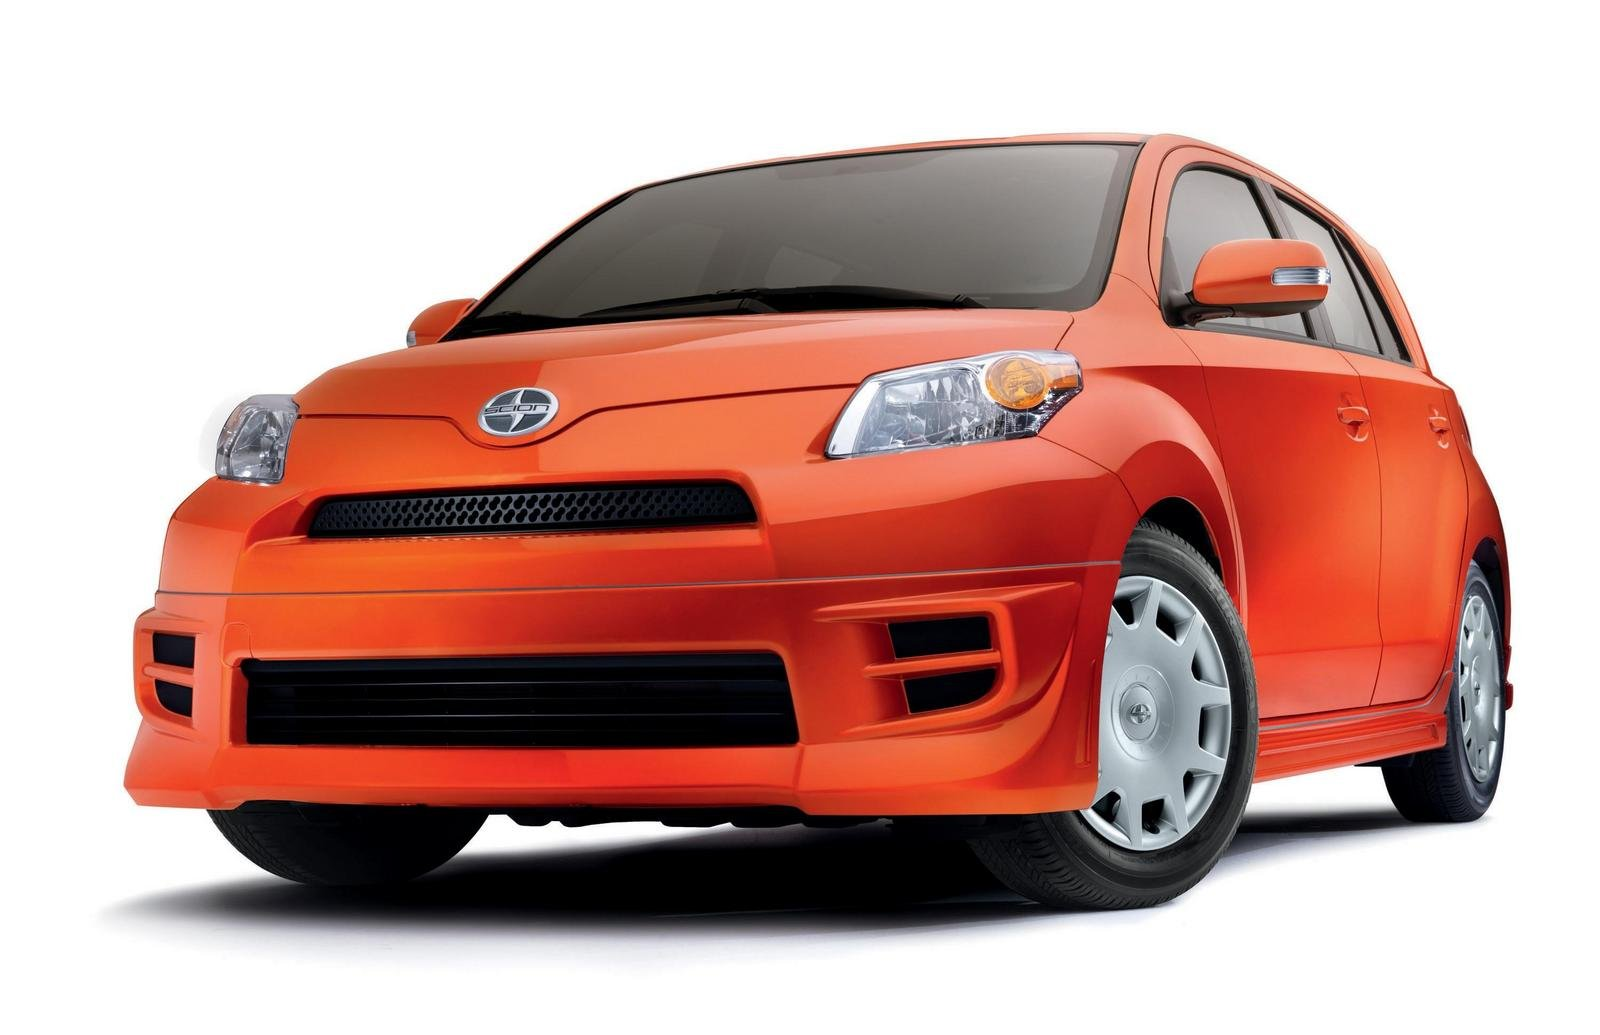 scion xd release series 1 0 pricing announced news top speed. Black Bedroom Furniture Sets. Home Design Ideas